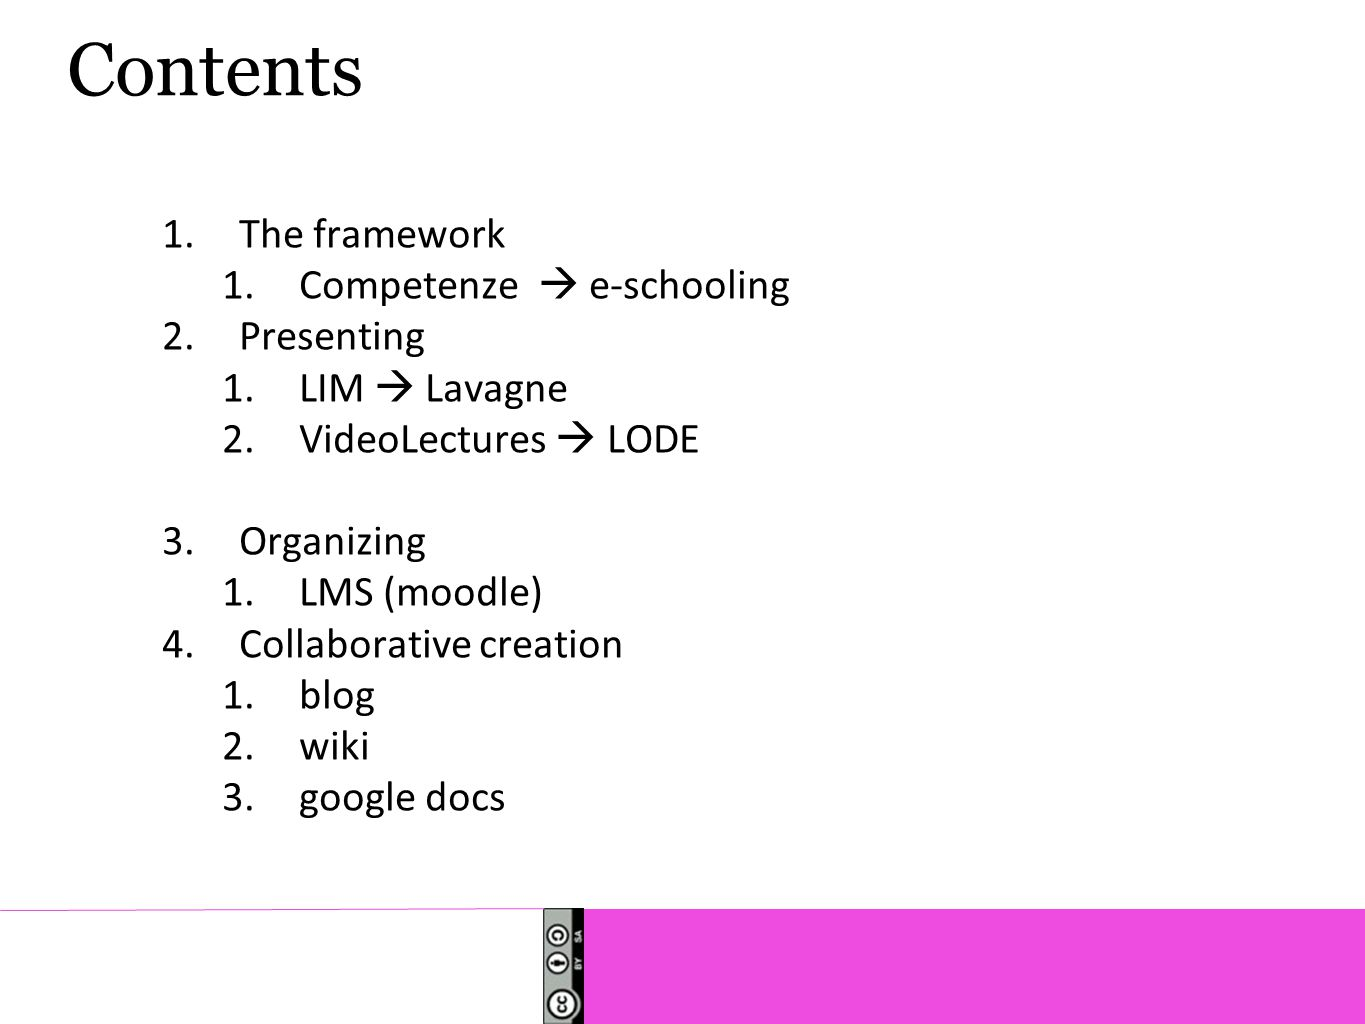 Contents 1.The framework 1.Competenze  e-schooling 2.Presenting 1.LIM  Lavagne 2.VideoLectures  LODE 3.Organizing 1.LMS (moodle) 4.Collaborative creation 1.blog 2.wiki 3.google docs